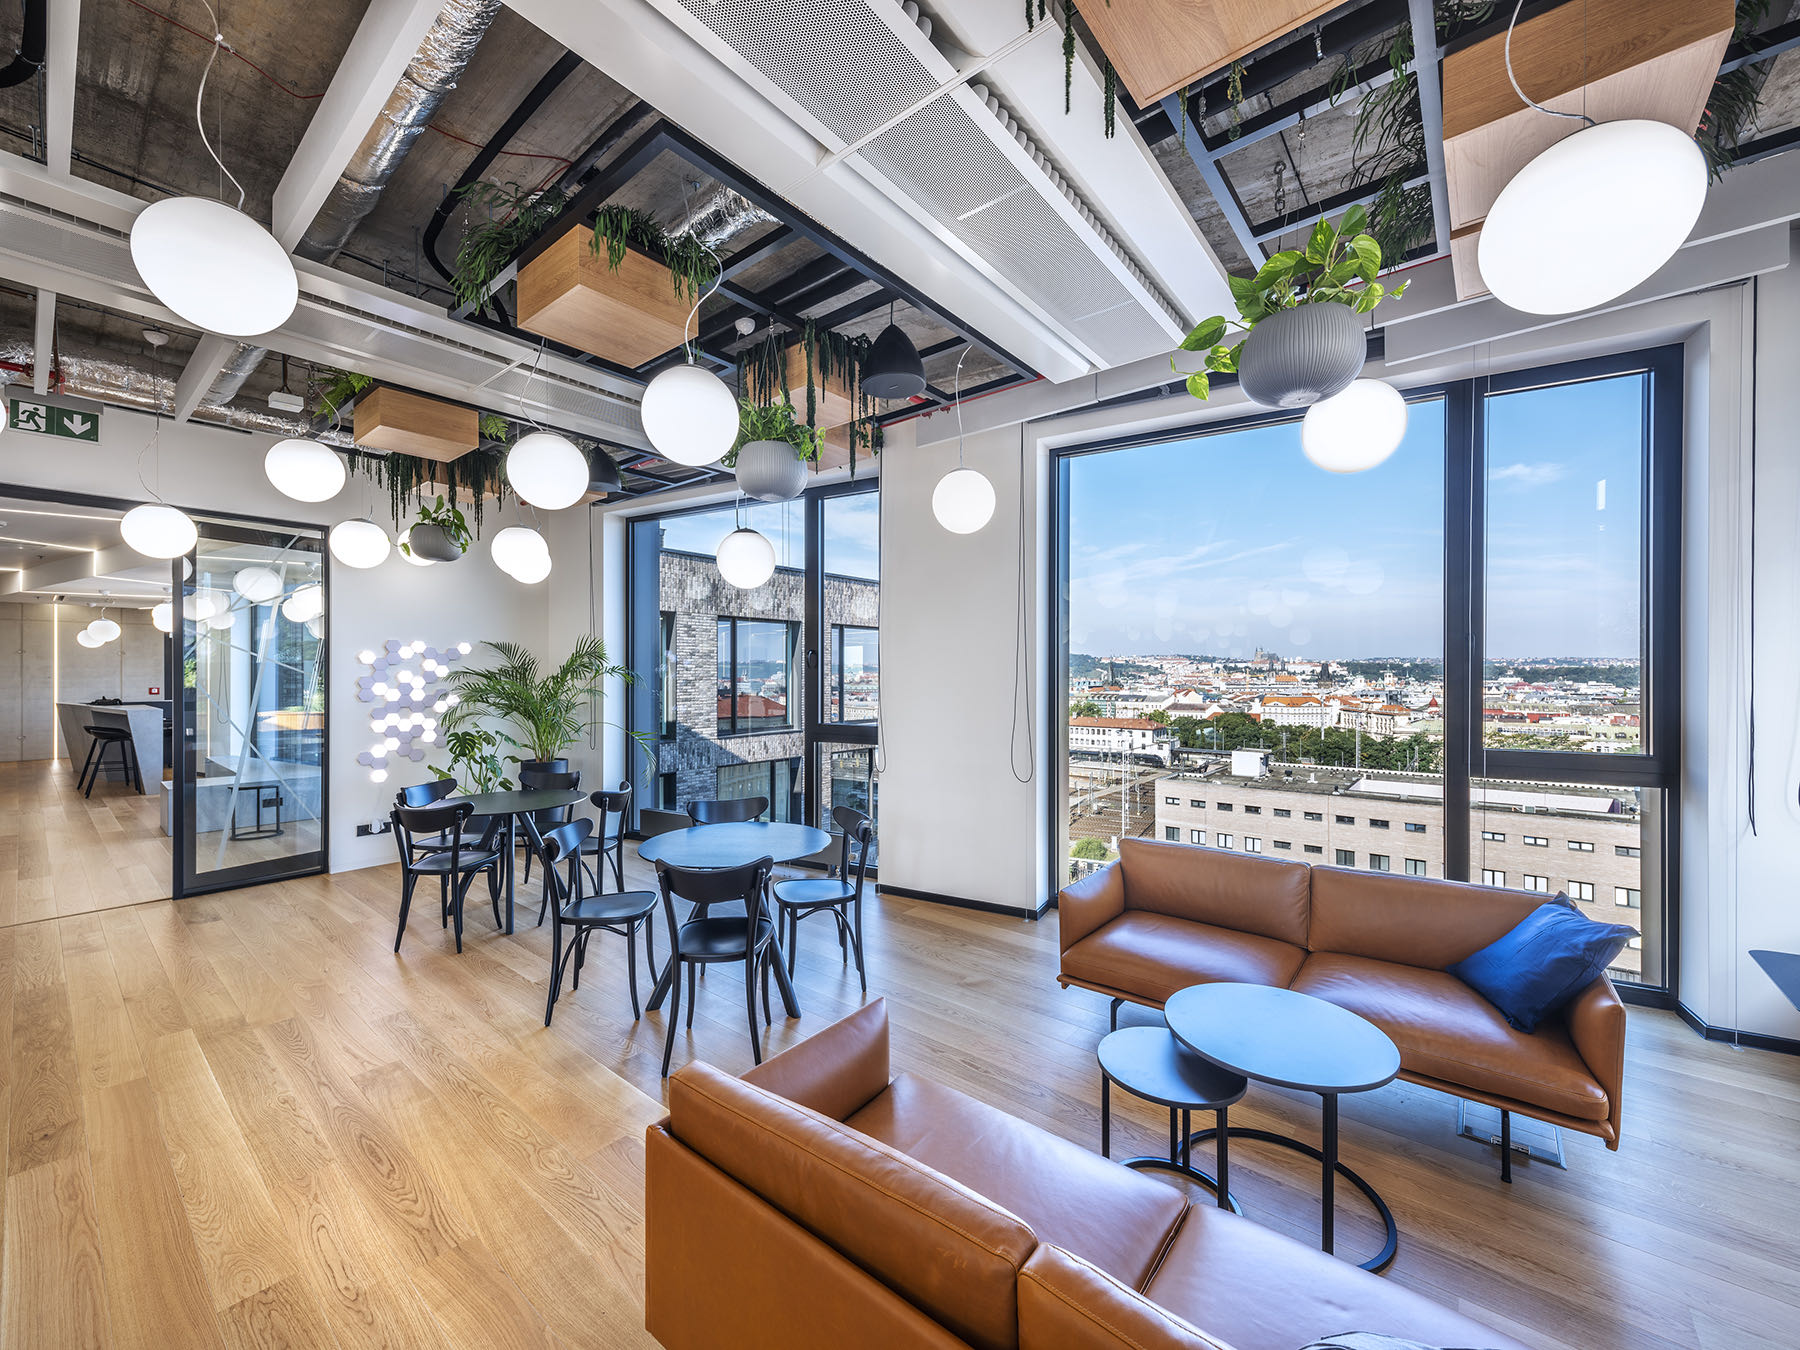 A Look Inside Private Technology Company Offices in Prague